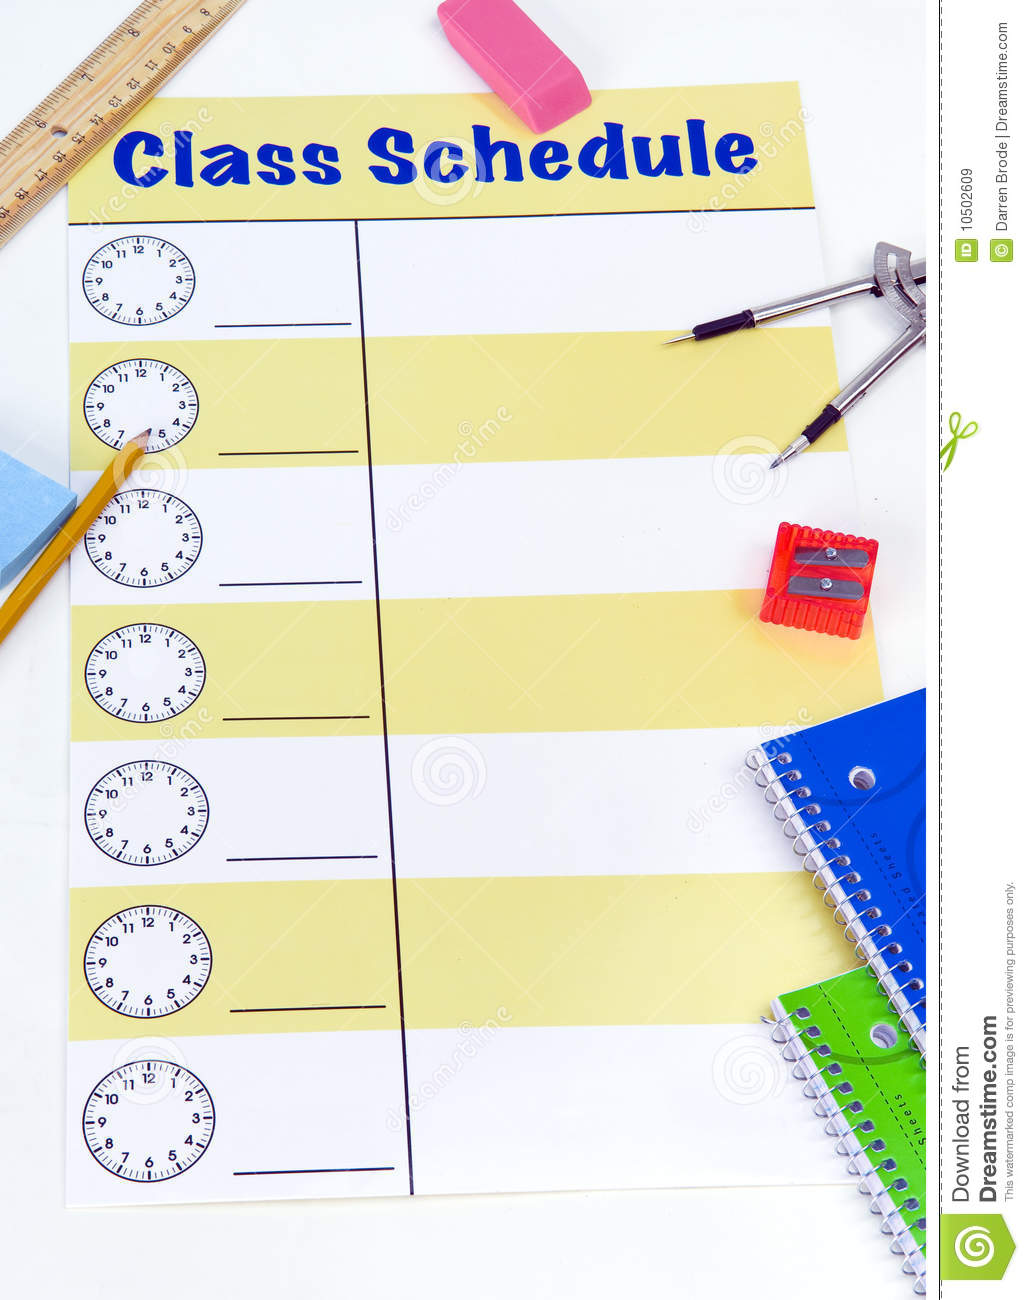 Watch more like Course Schedule Clip Art.